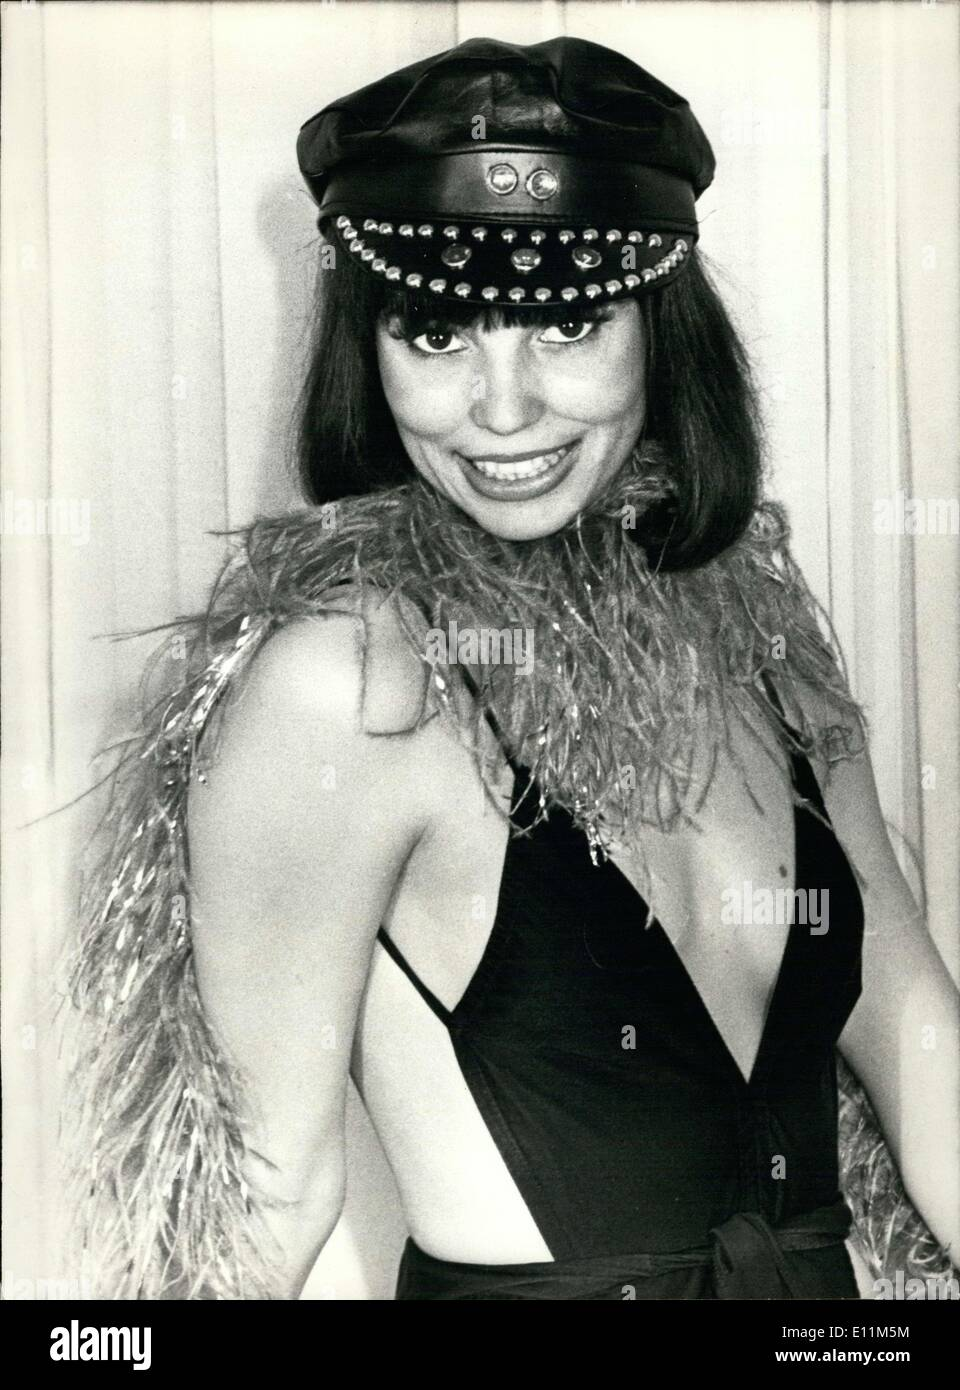 Jan. 18, 1979 - Crazy Horse Saloon Girl Ruby Montana - Stock Image